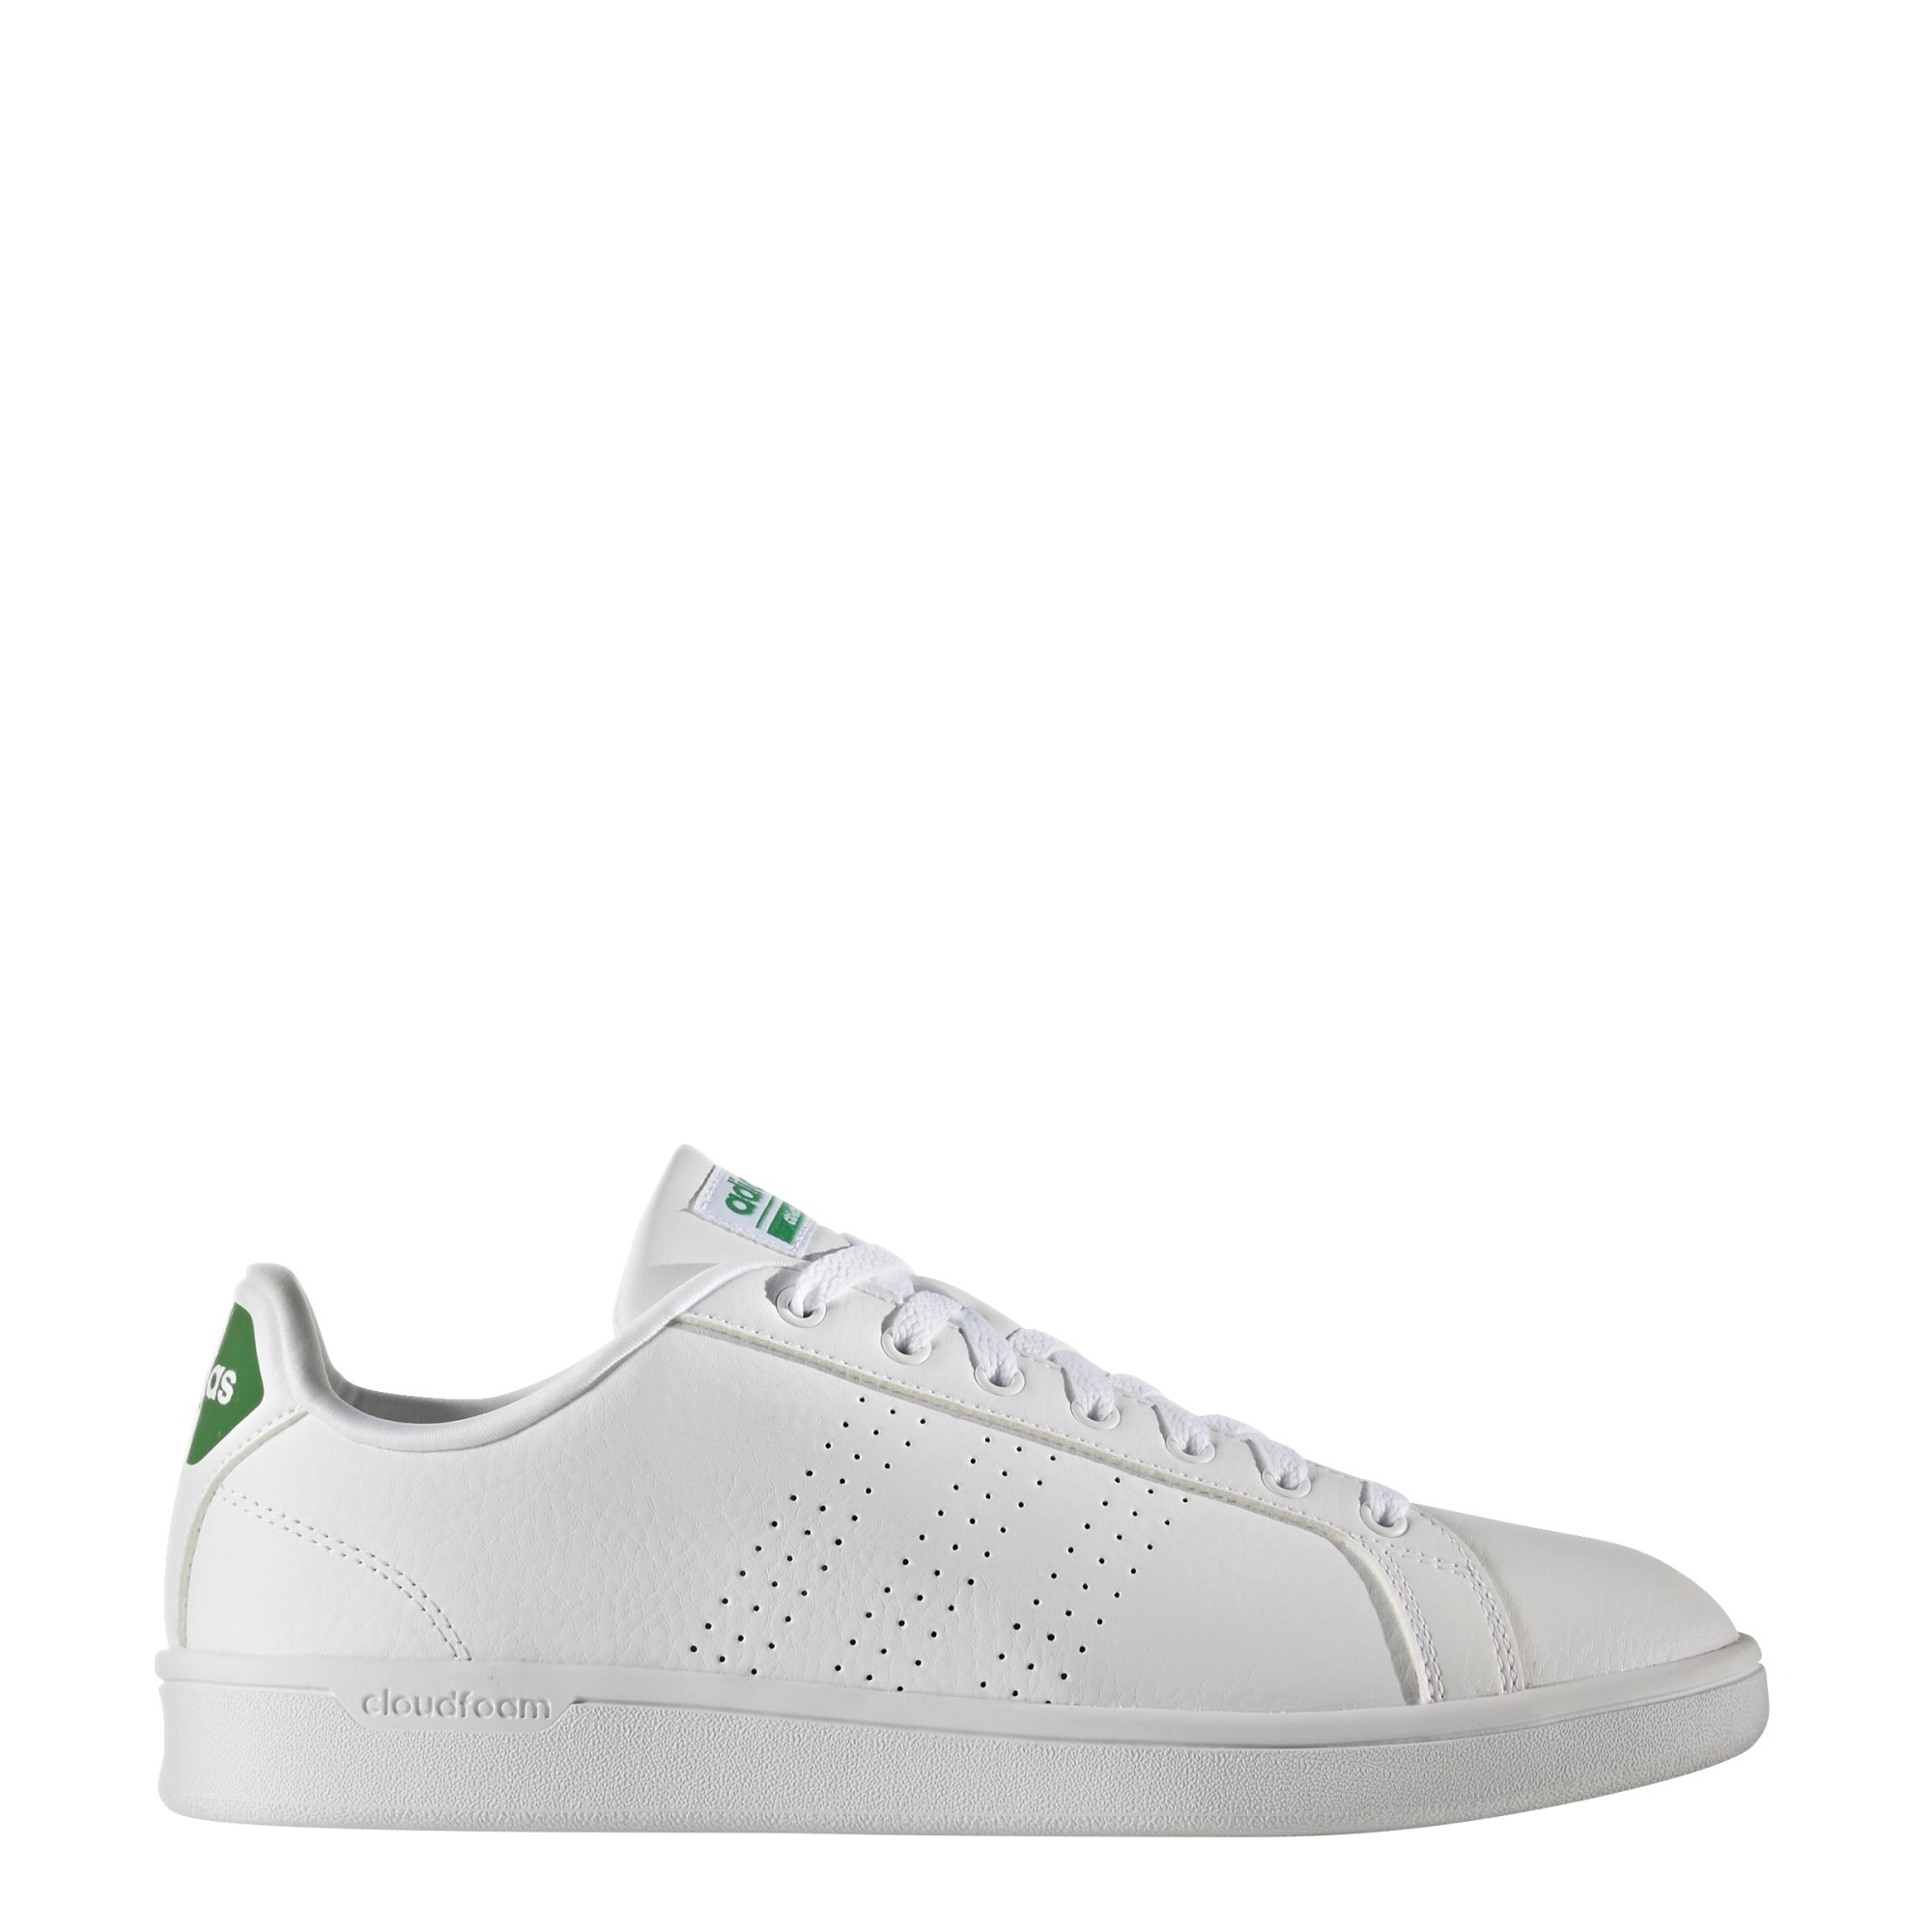 Adidas Cloudfoam Advantage Heren sneakers